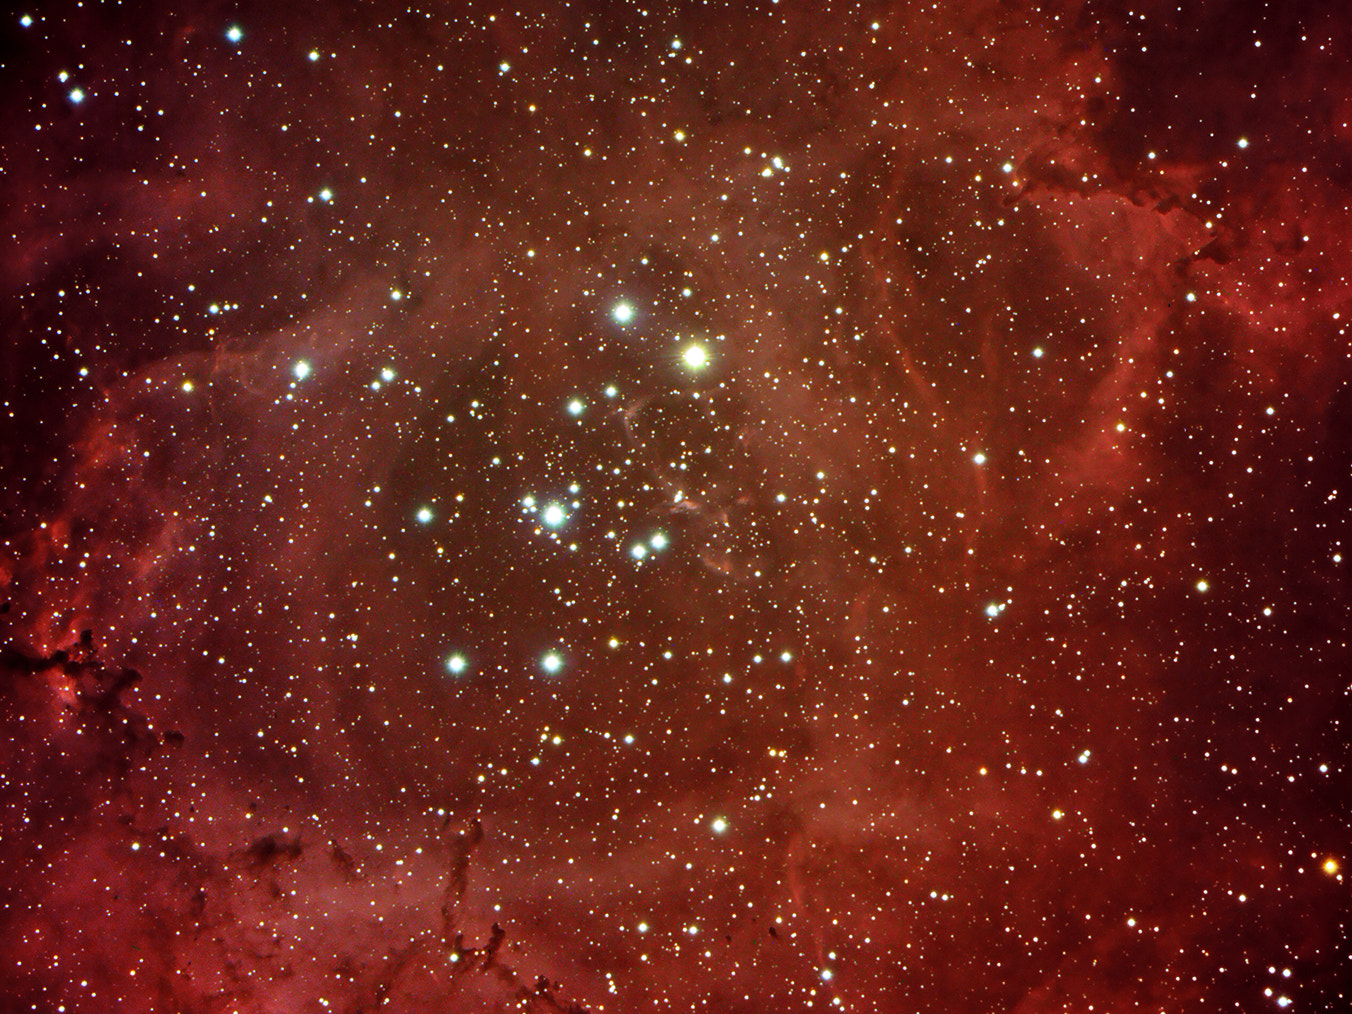 Photograph In the heart of Rosette nebula (NGC 2244) by Nicola Di Sario on 500px